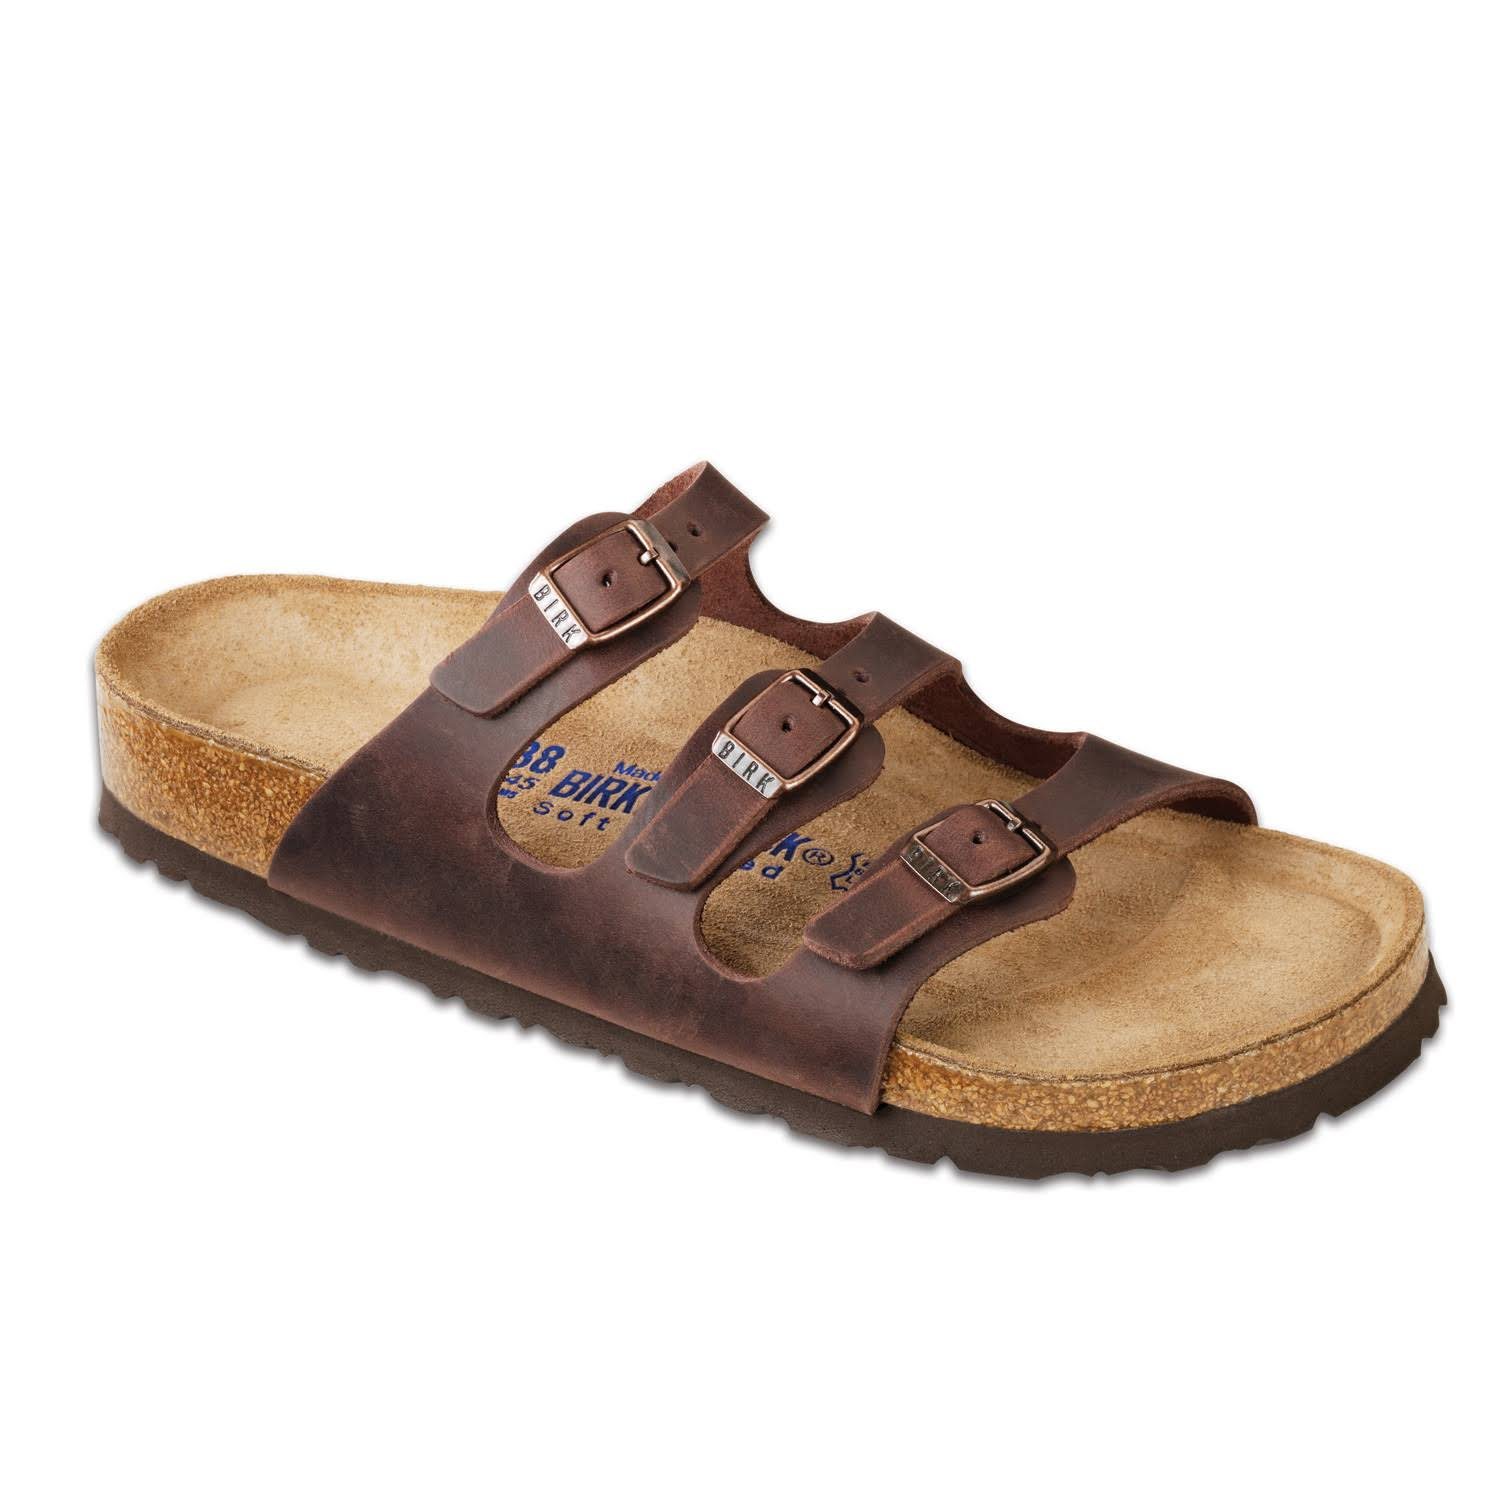 Birkenstock Women's Florida Soft Footbed Sandal - Habana Waxy Leather, 40 M EU